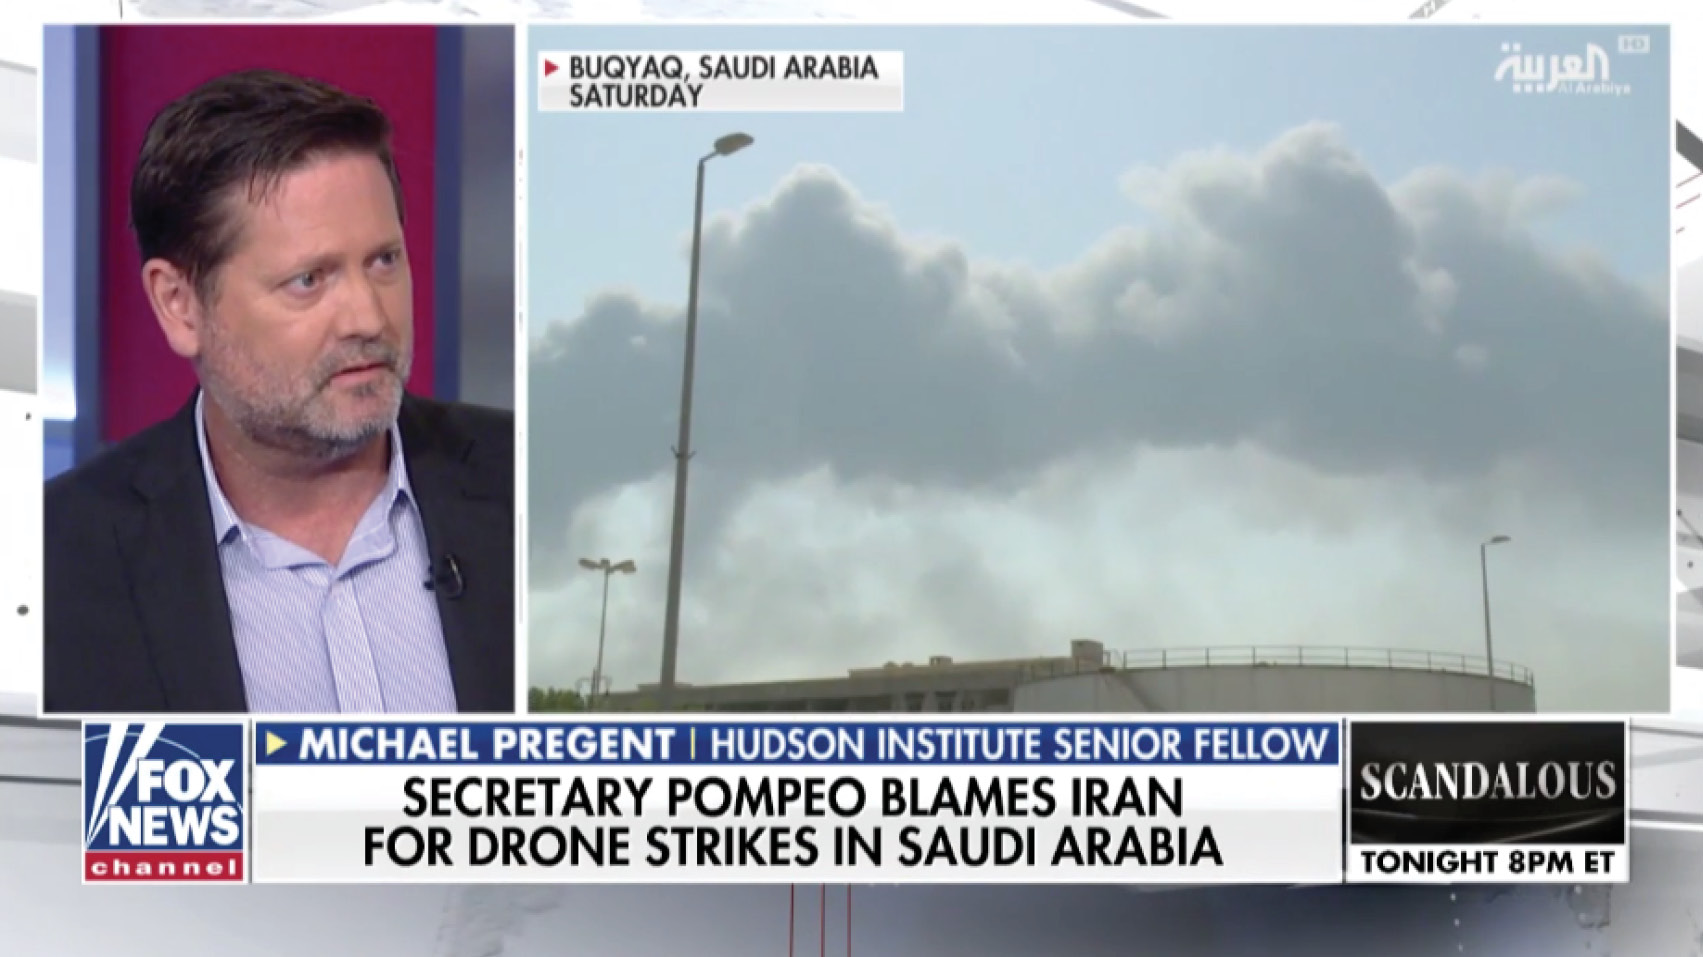 In an interview with Kristen Fisher on Fox News, Michael Pregent speaks on Iran's involvement in the strikes on Saudi oil facilities.